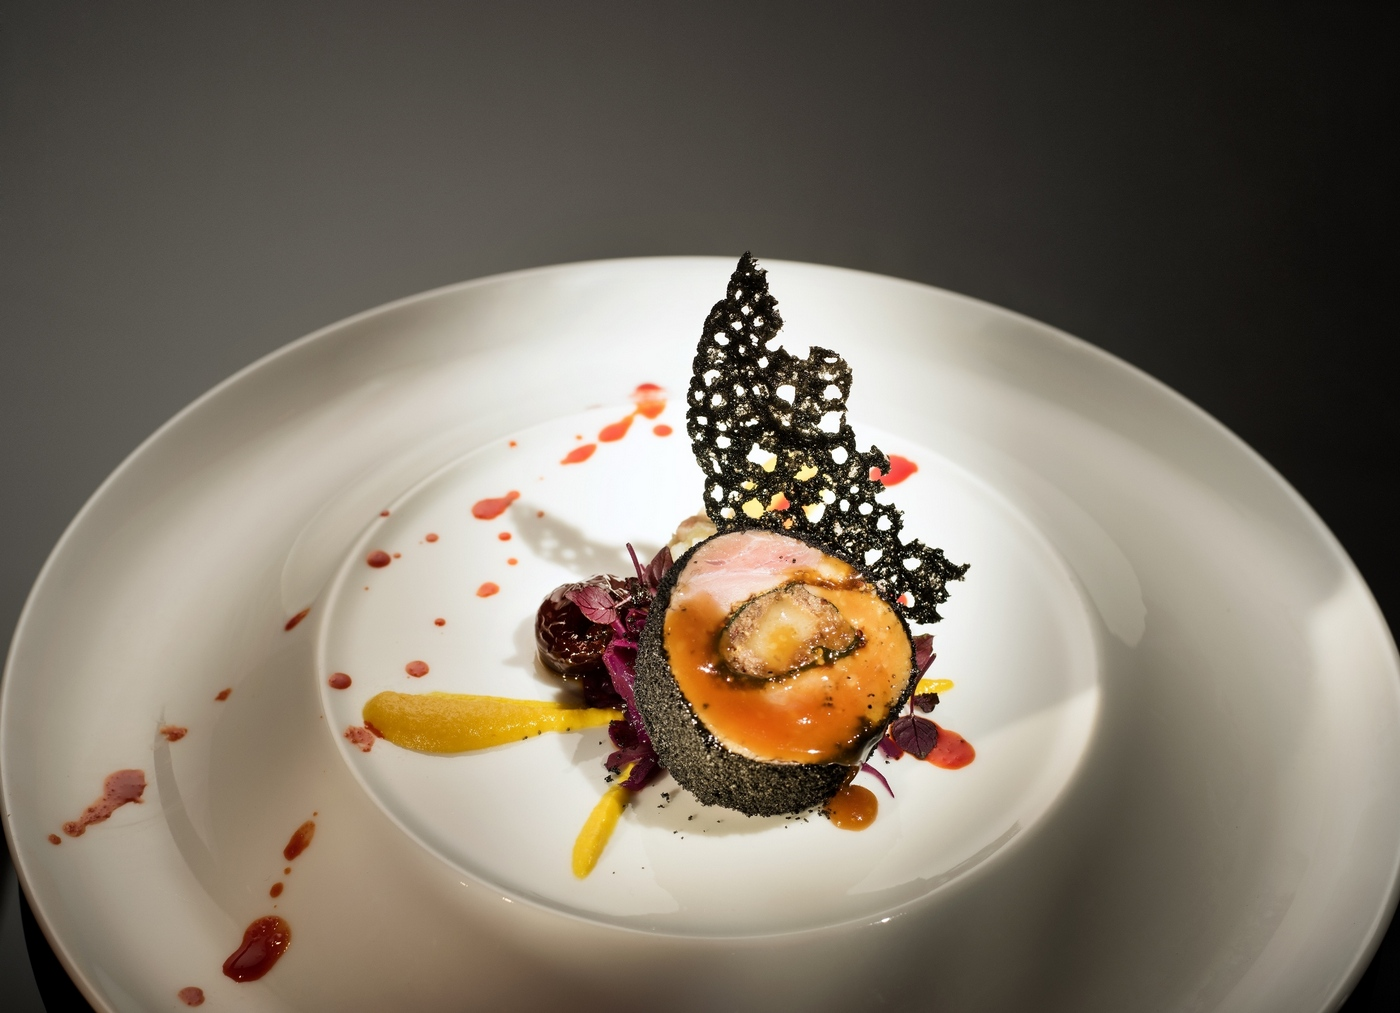 Gastronomy cover image